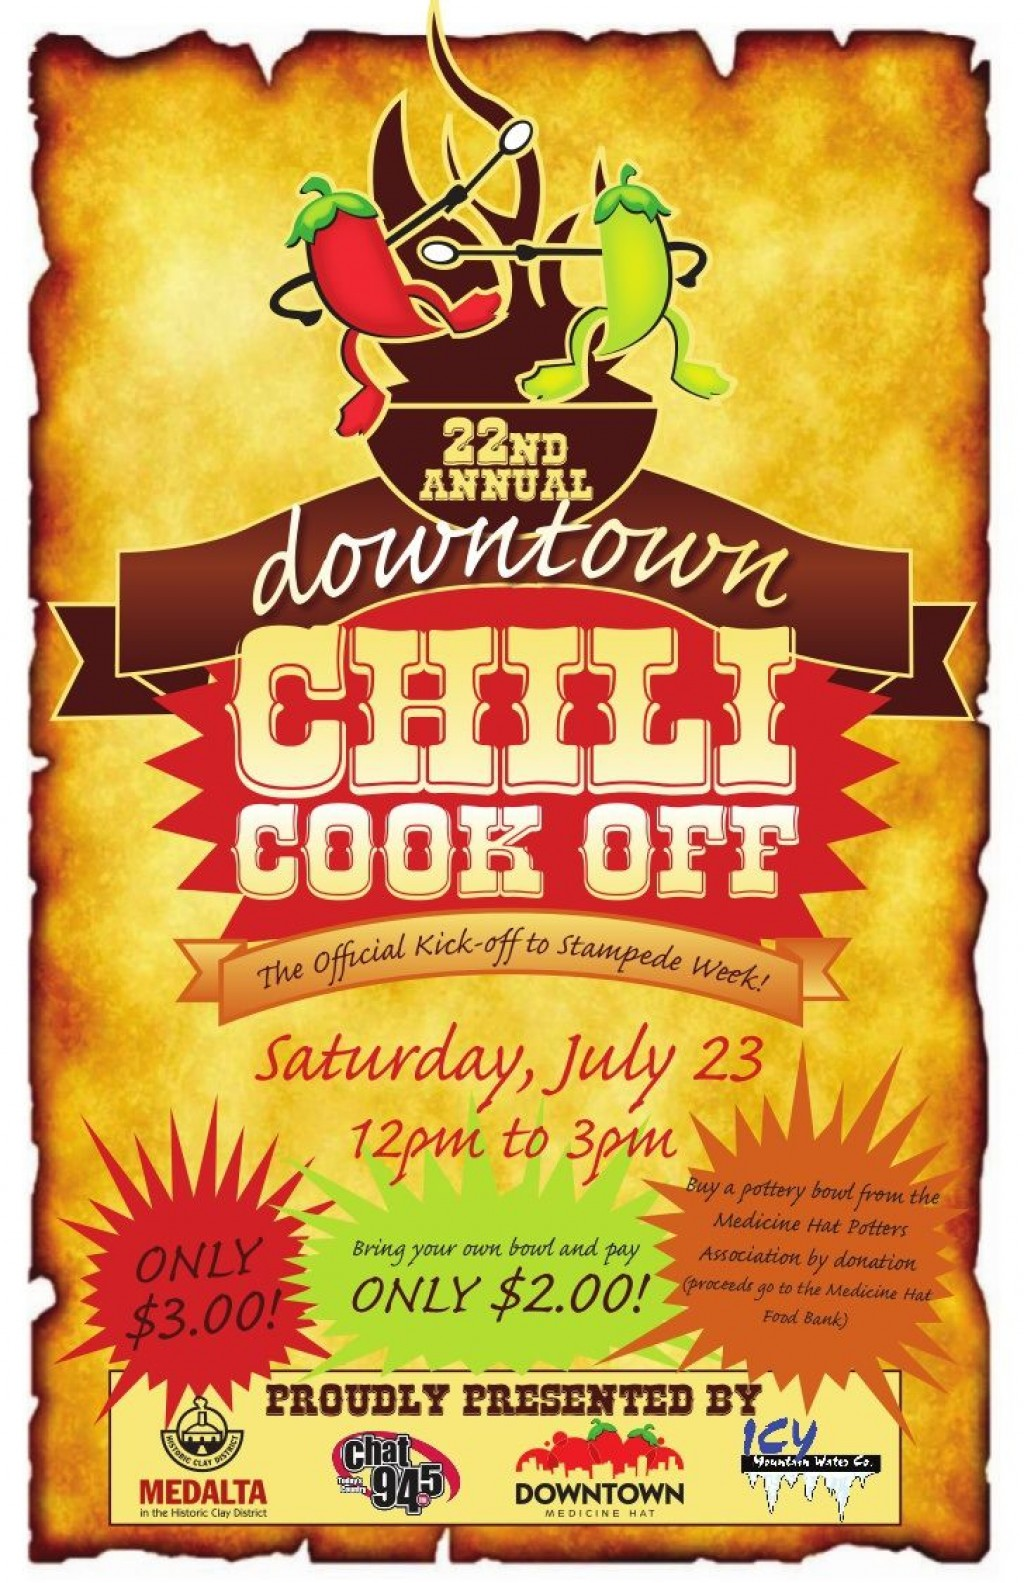 009 Outstanding Chili Cook Off Flyer Template Idea  Halloween Office PowerpointLarge